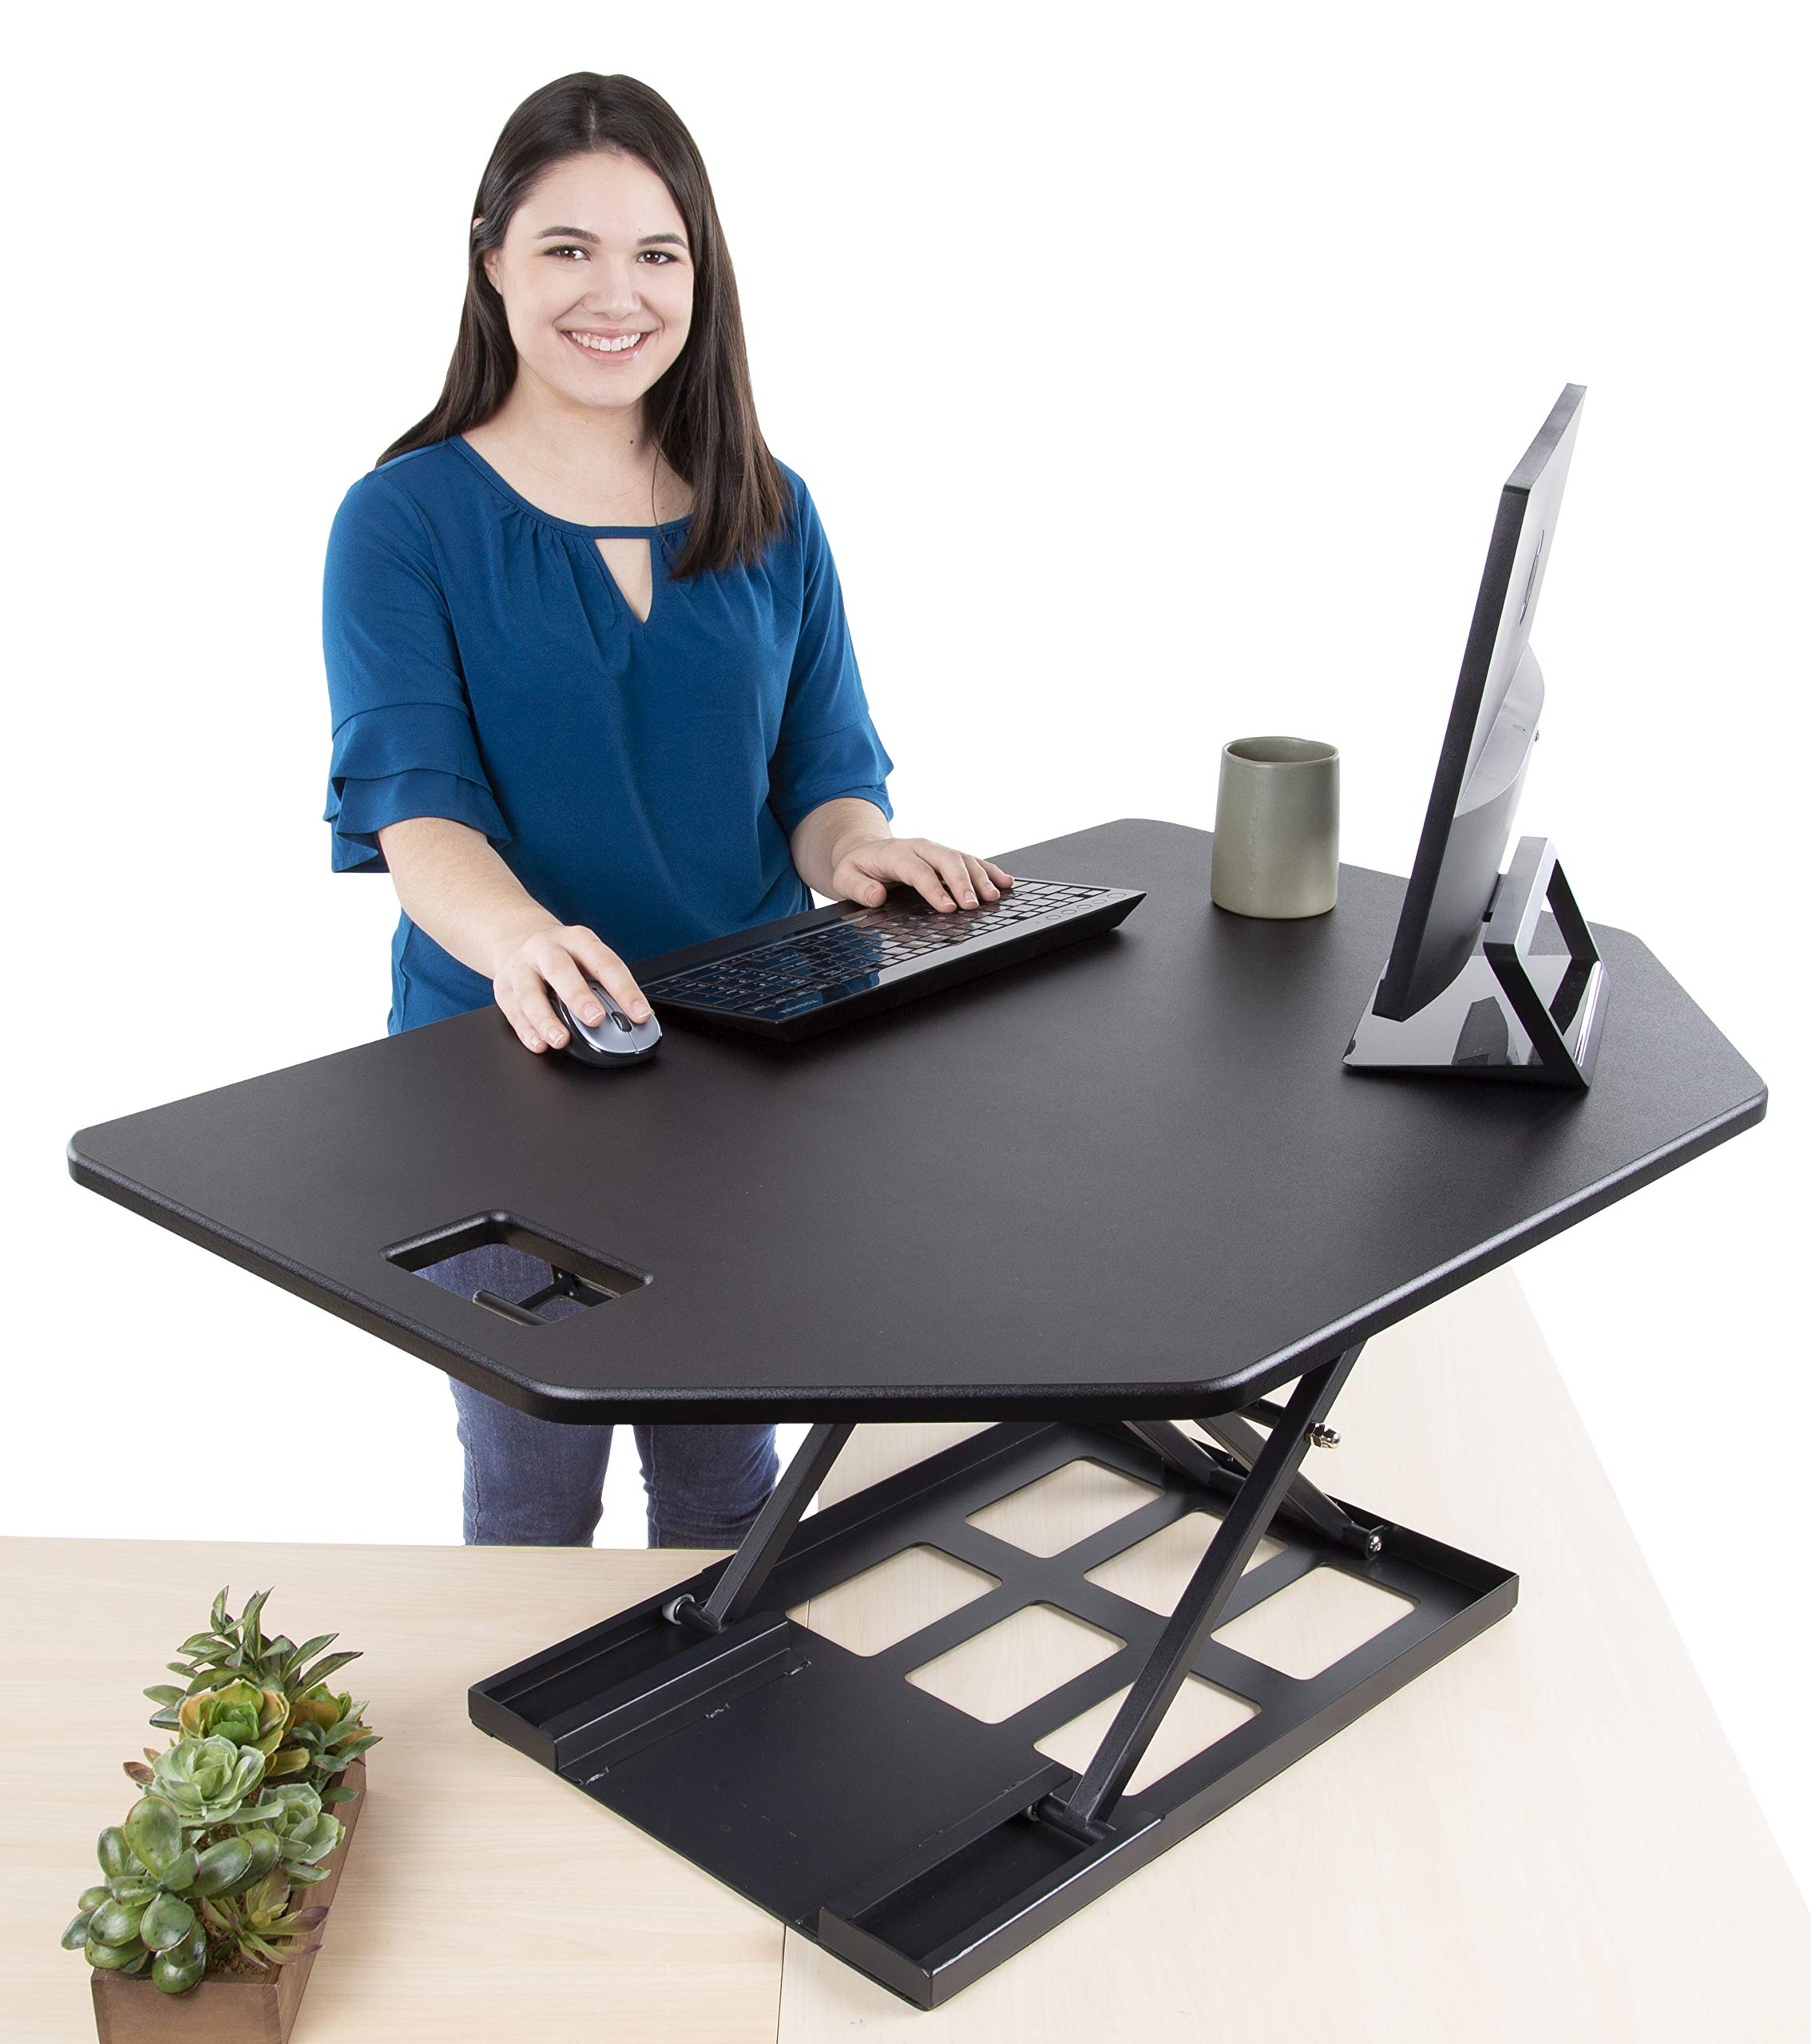 Stand Steady X-Elite Pro Corner Standing Desk | 40 Inch Corner Sit to Stand Desk Converter Ideal for Cubicles and L Shaped Desks! Easy Height-Adjustable and Fully Assembled! by Stand Steady